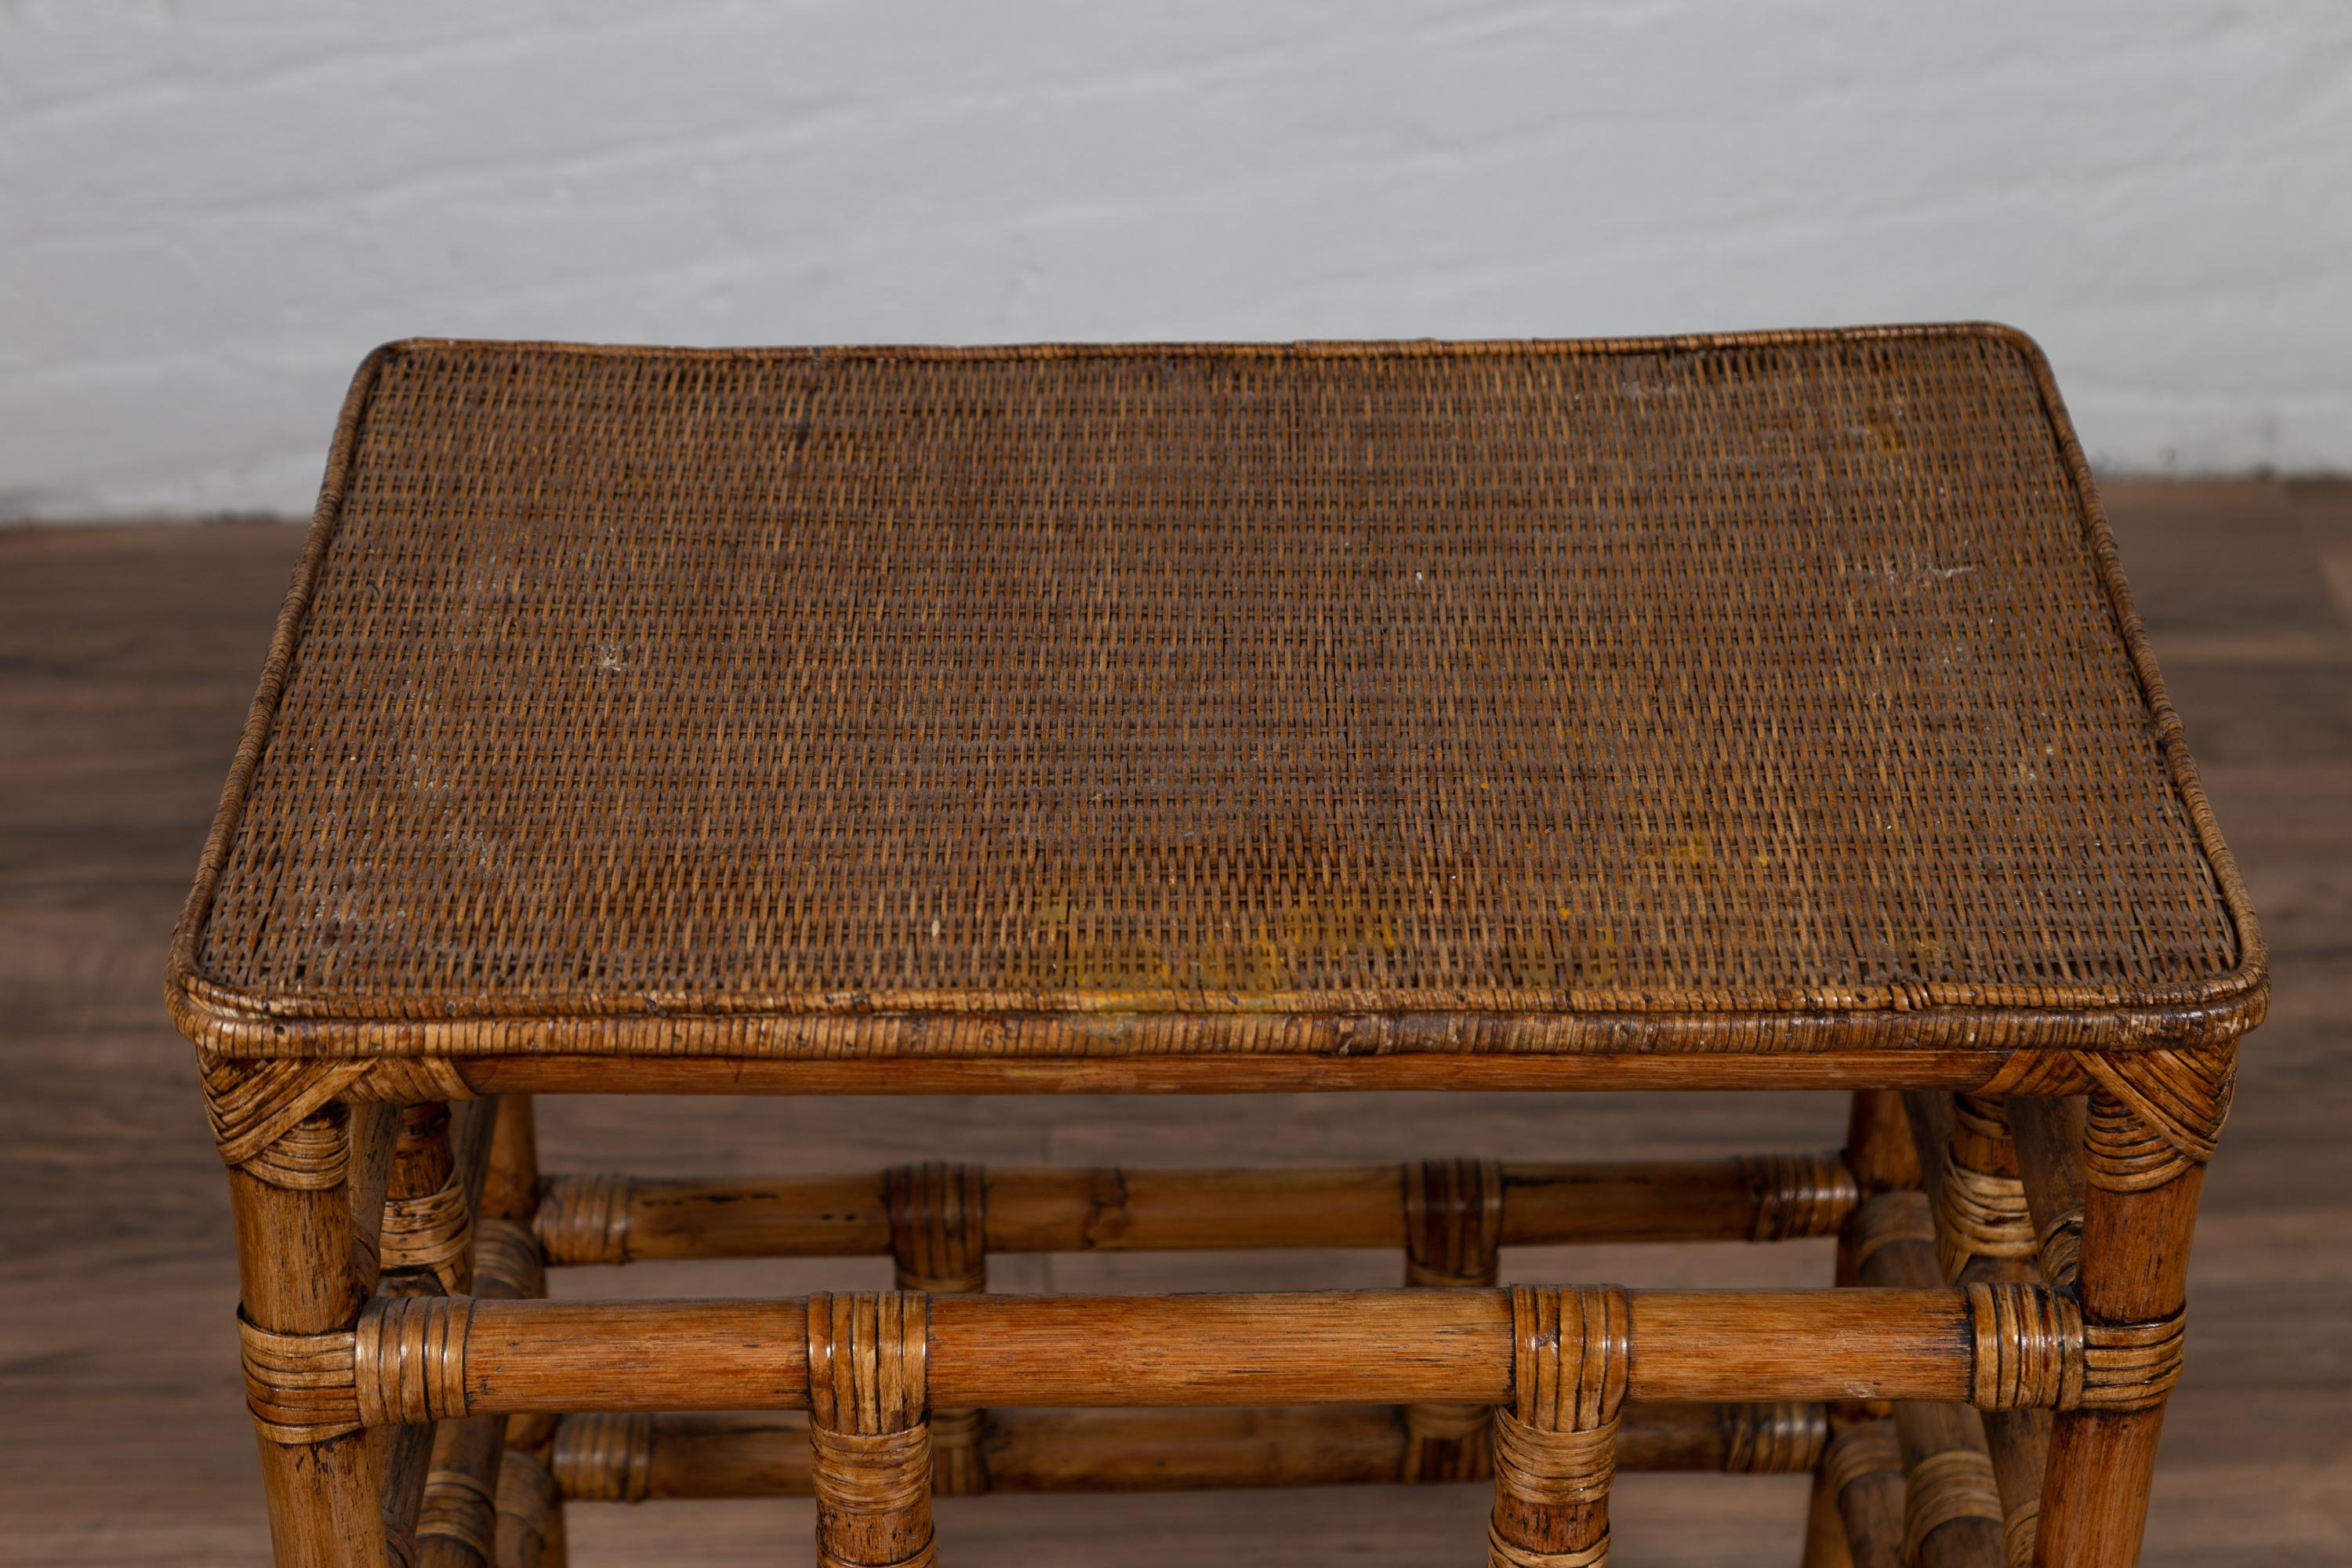 Vintage Midcentury Thai Side Table With Rattan Top And Bamboo Base At 1stdibs